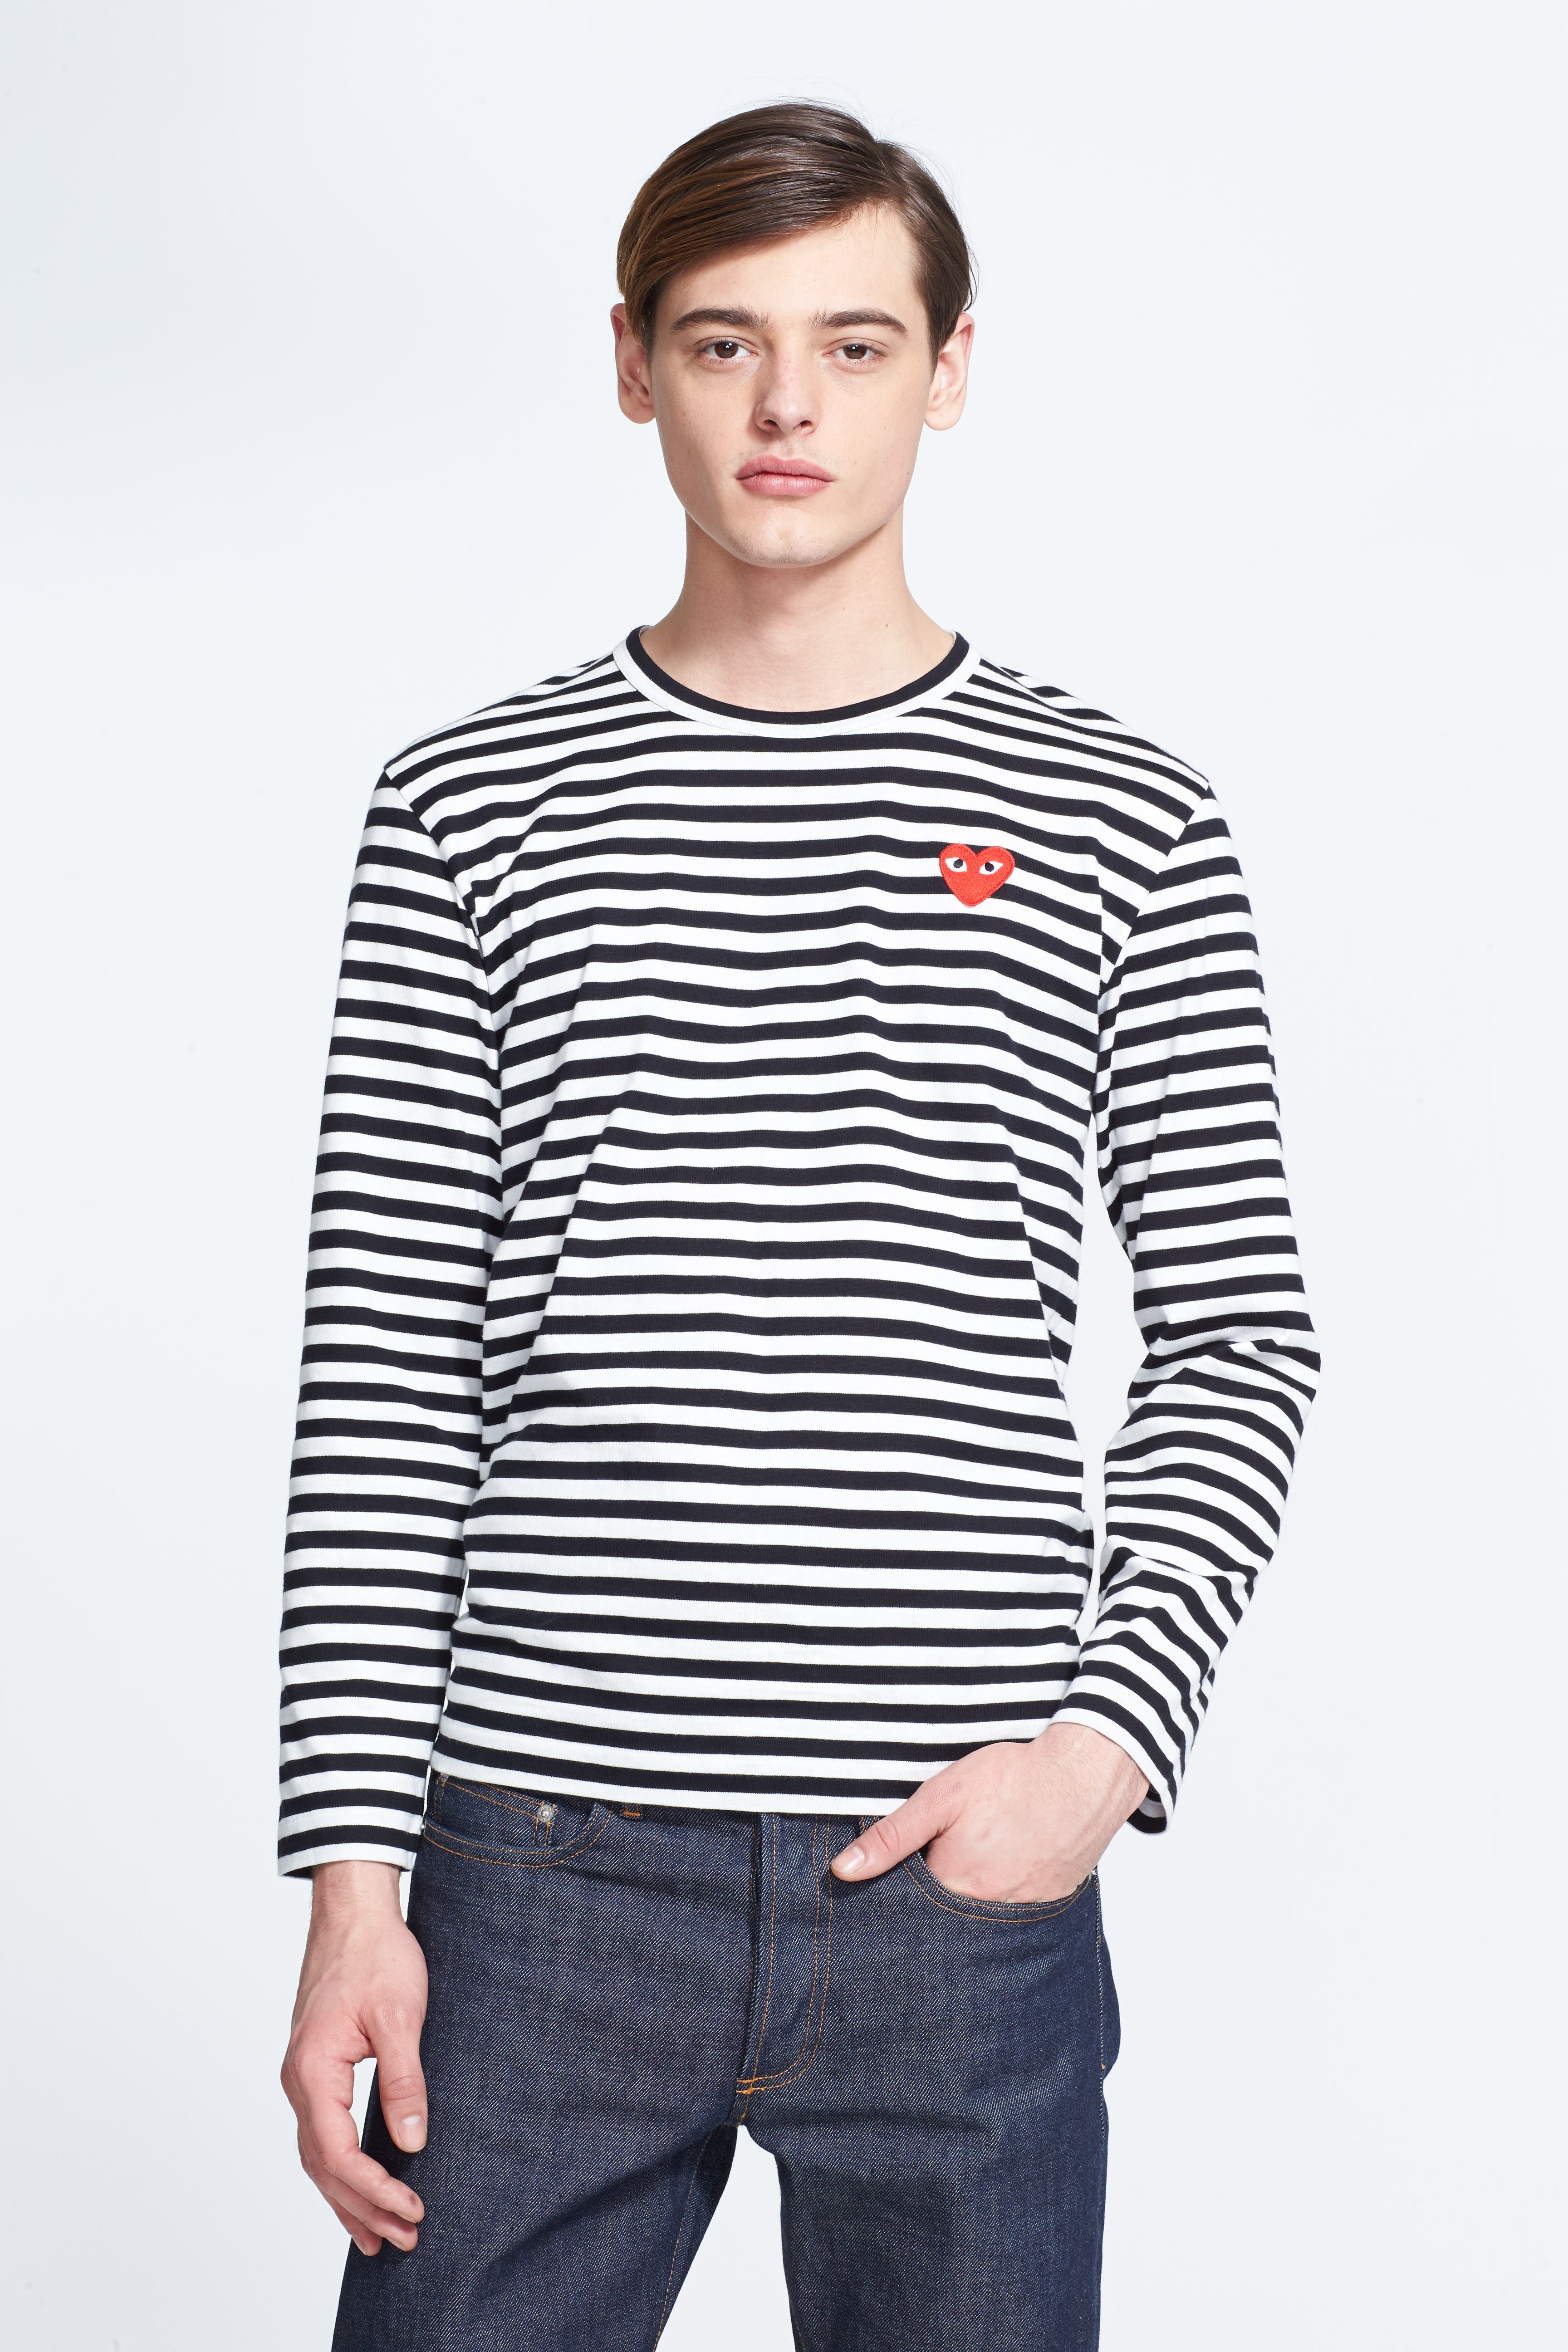 Sebaby Mens Pocket Long Sleeve Striped Button Down Basic Style T-Shirts